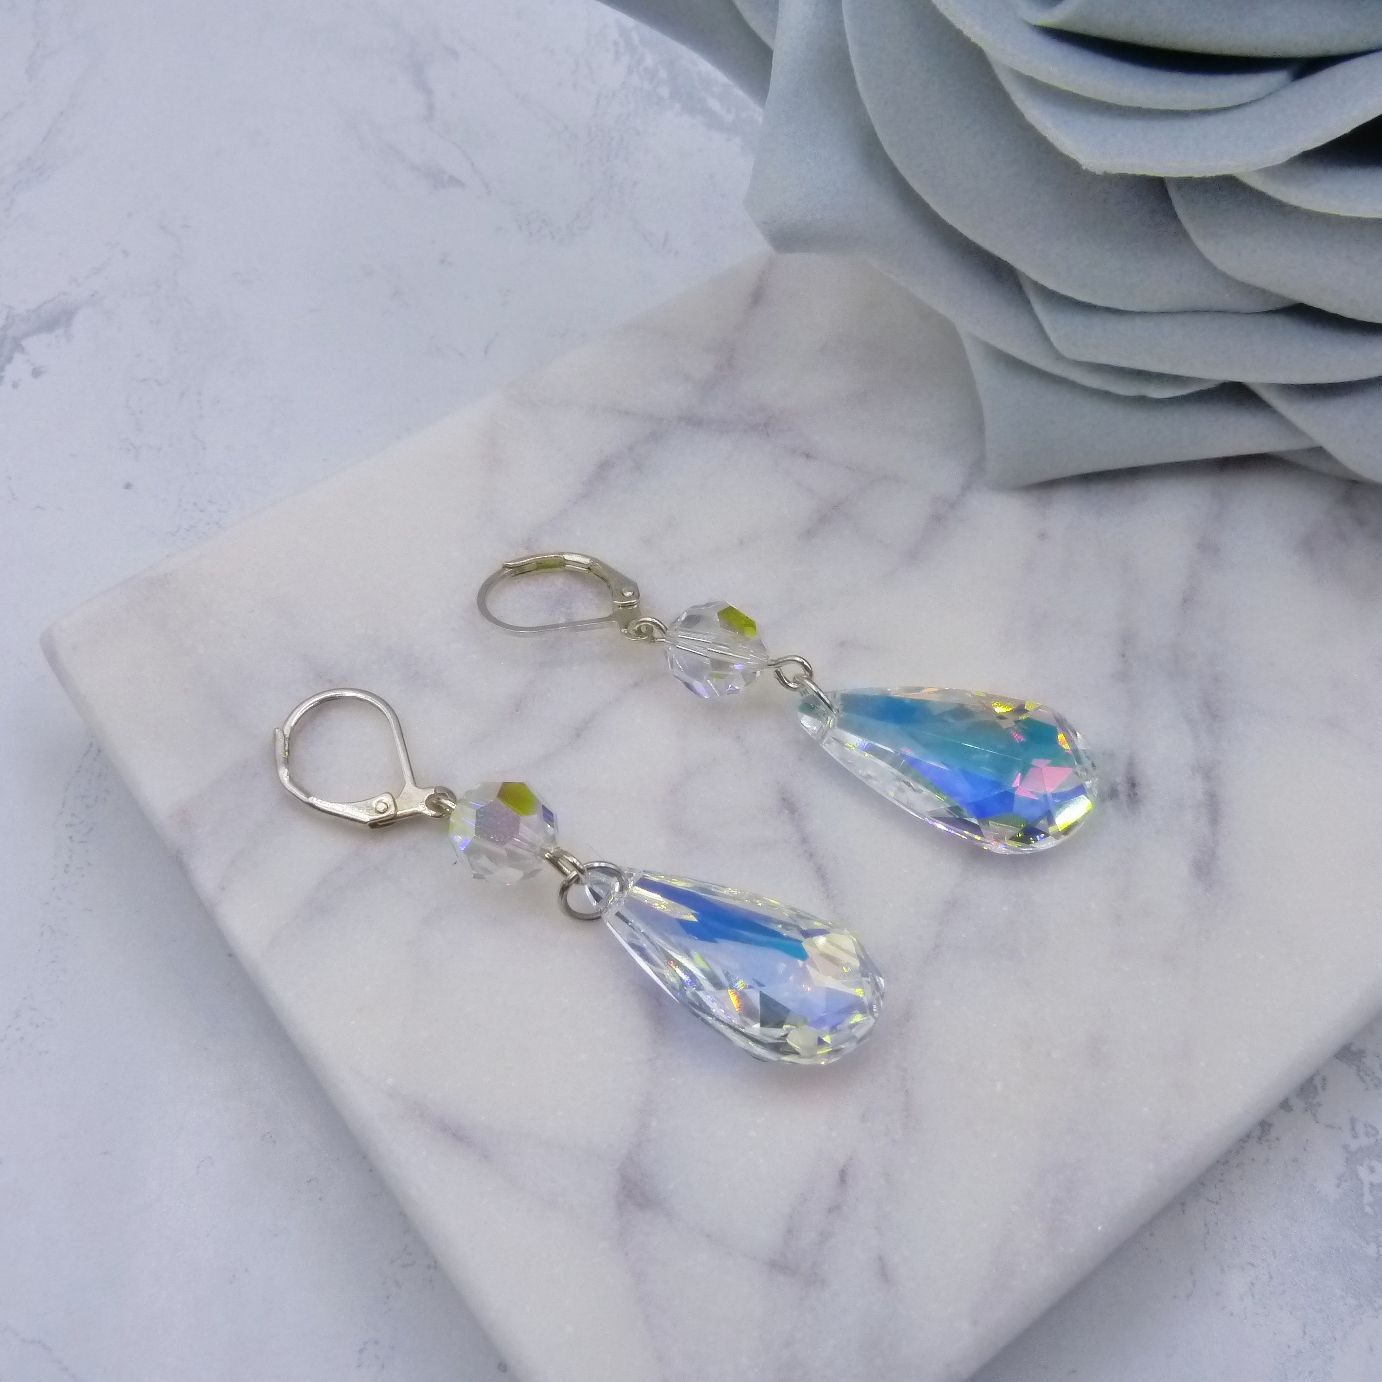 Swarovski Crystal Teardrop wedding bridal earrings